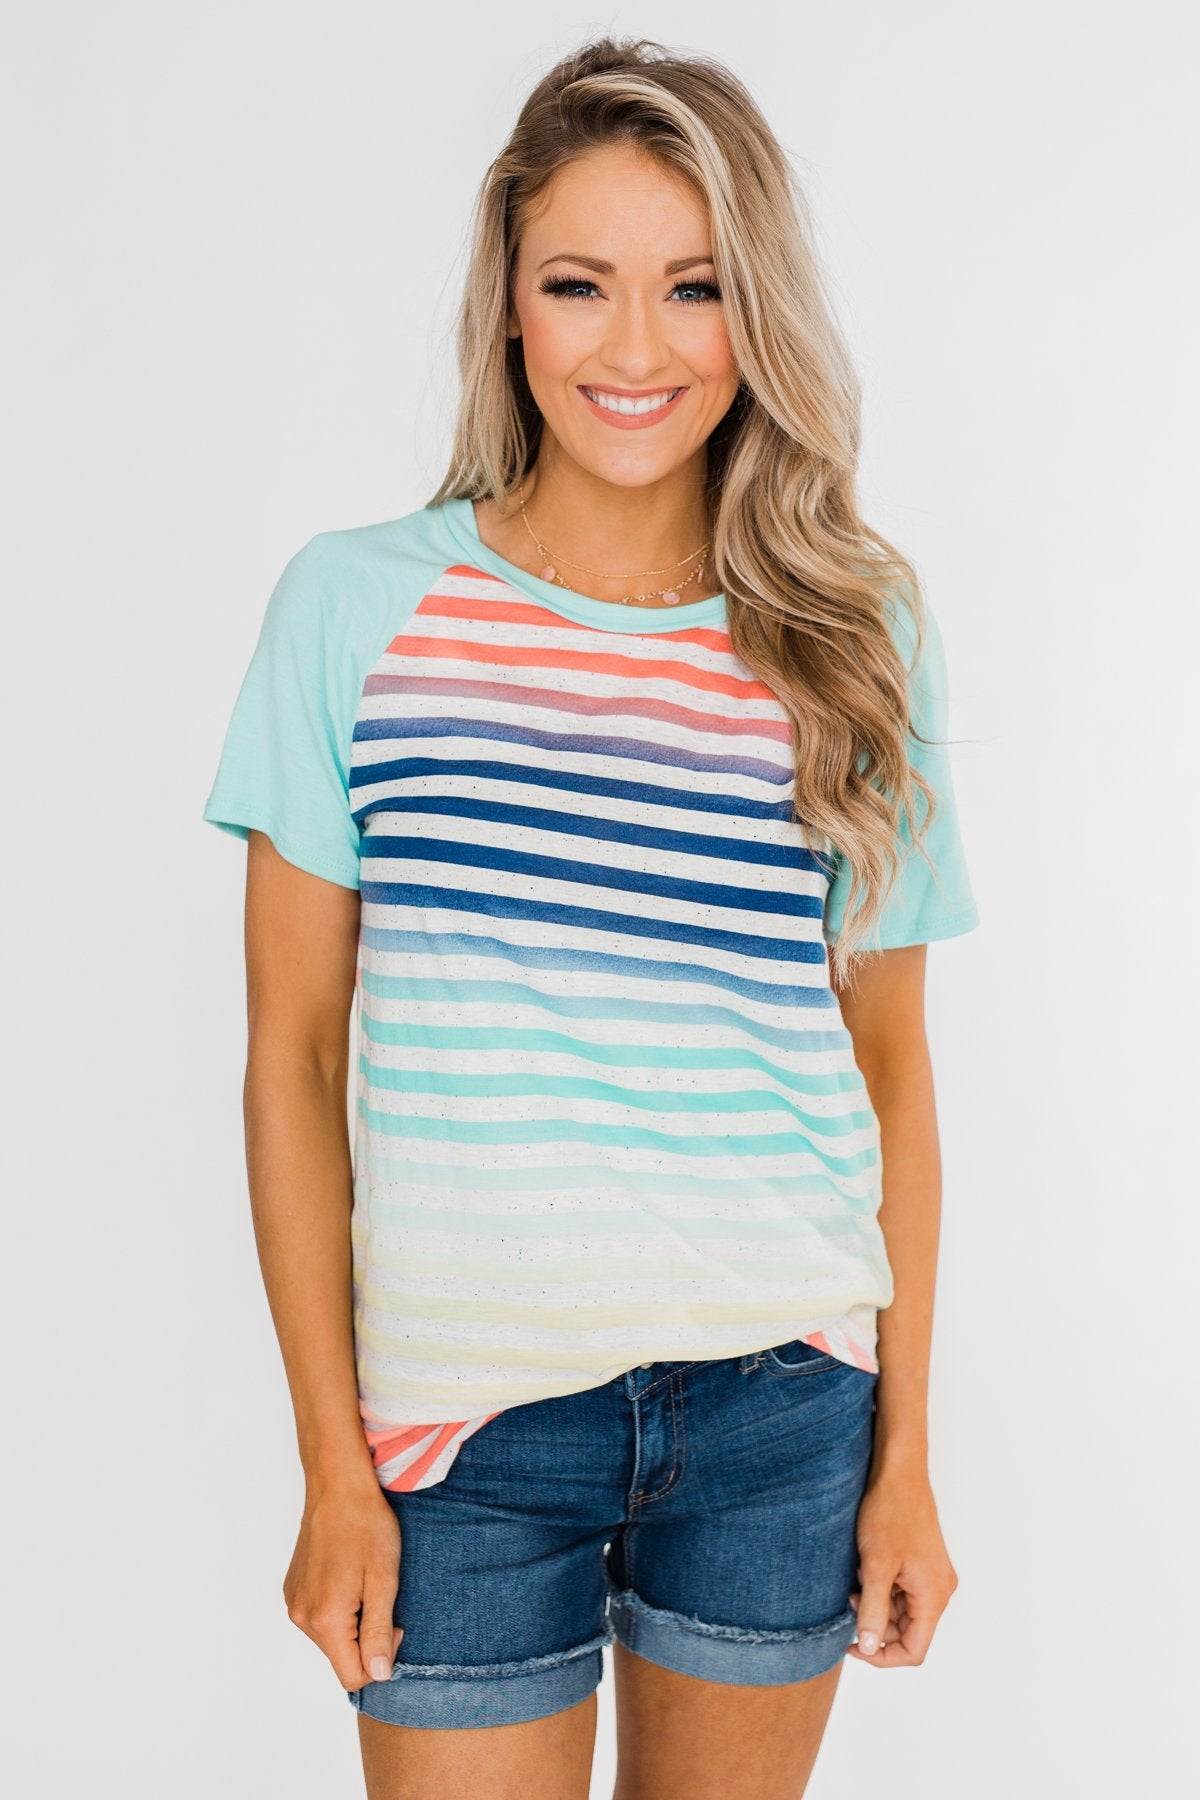 Summer Horizon Multi-Colored Striped Top- Light Blue